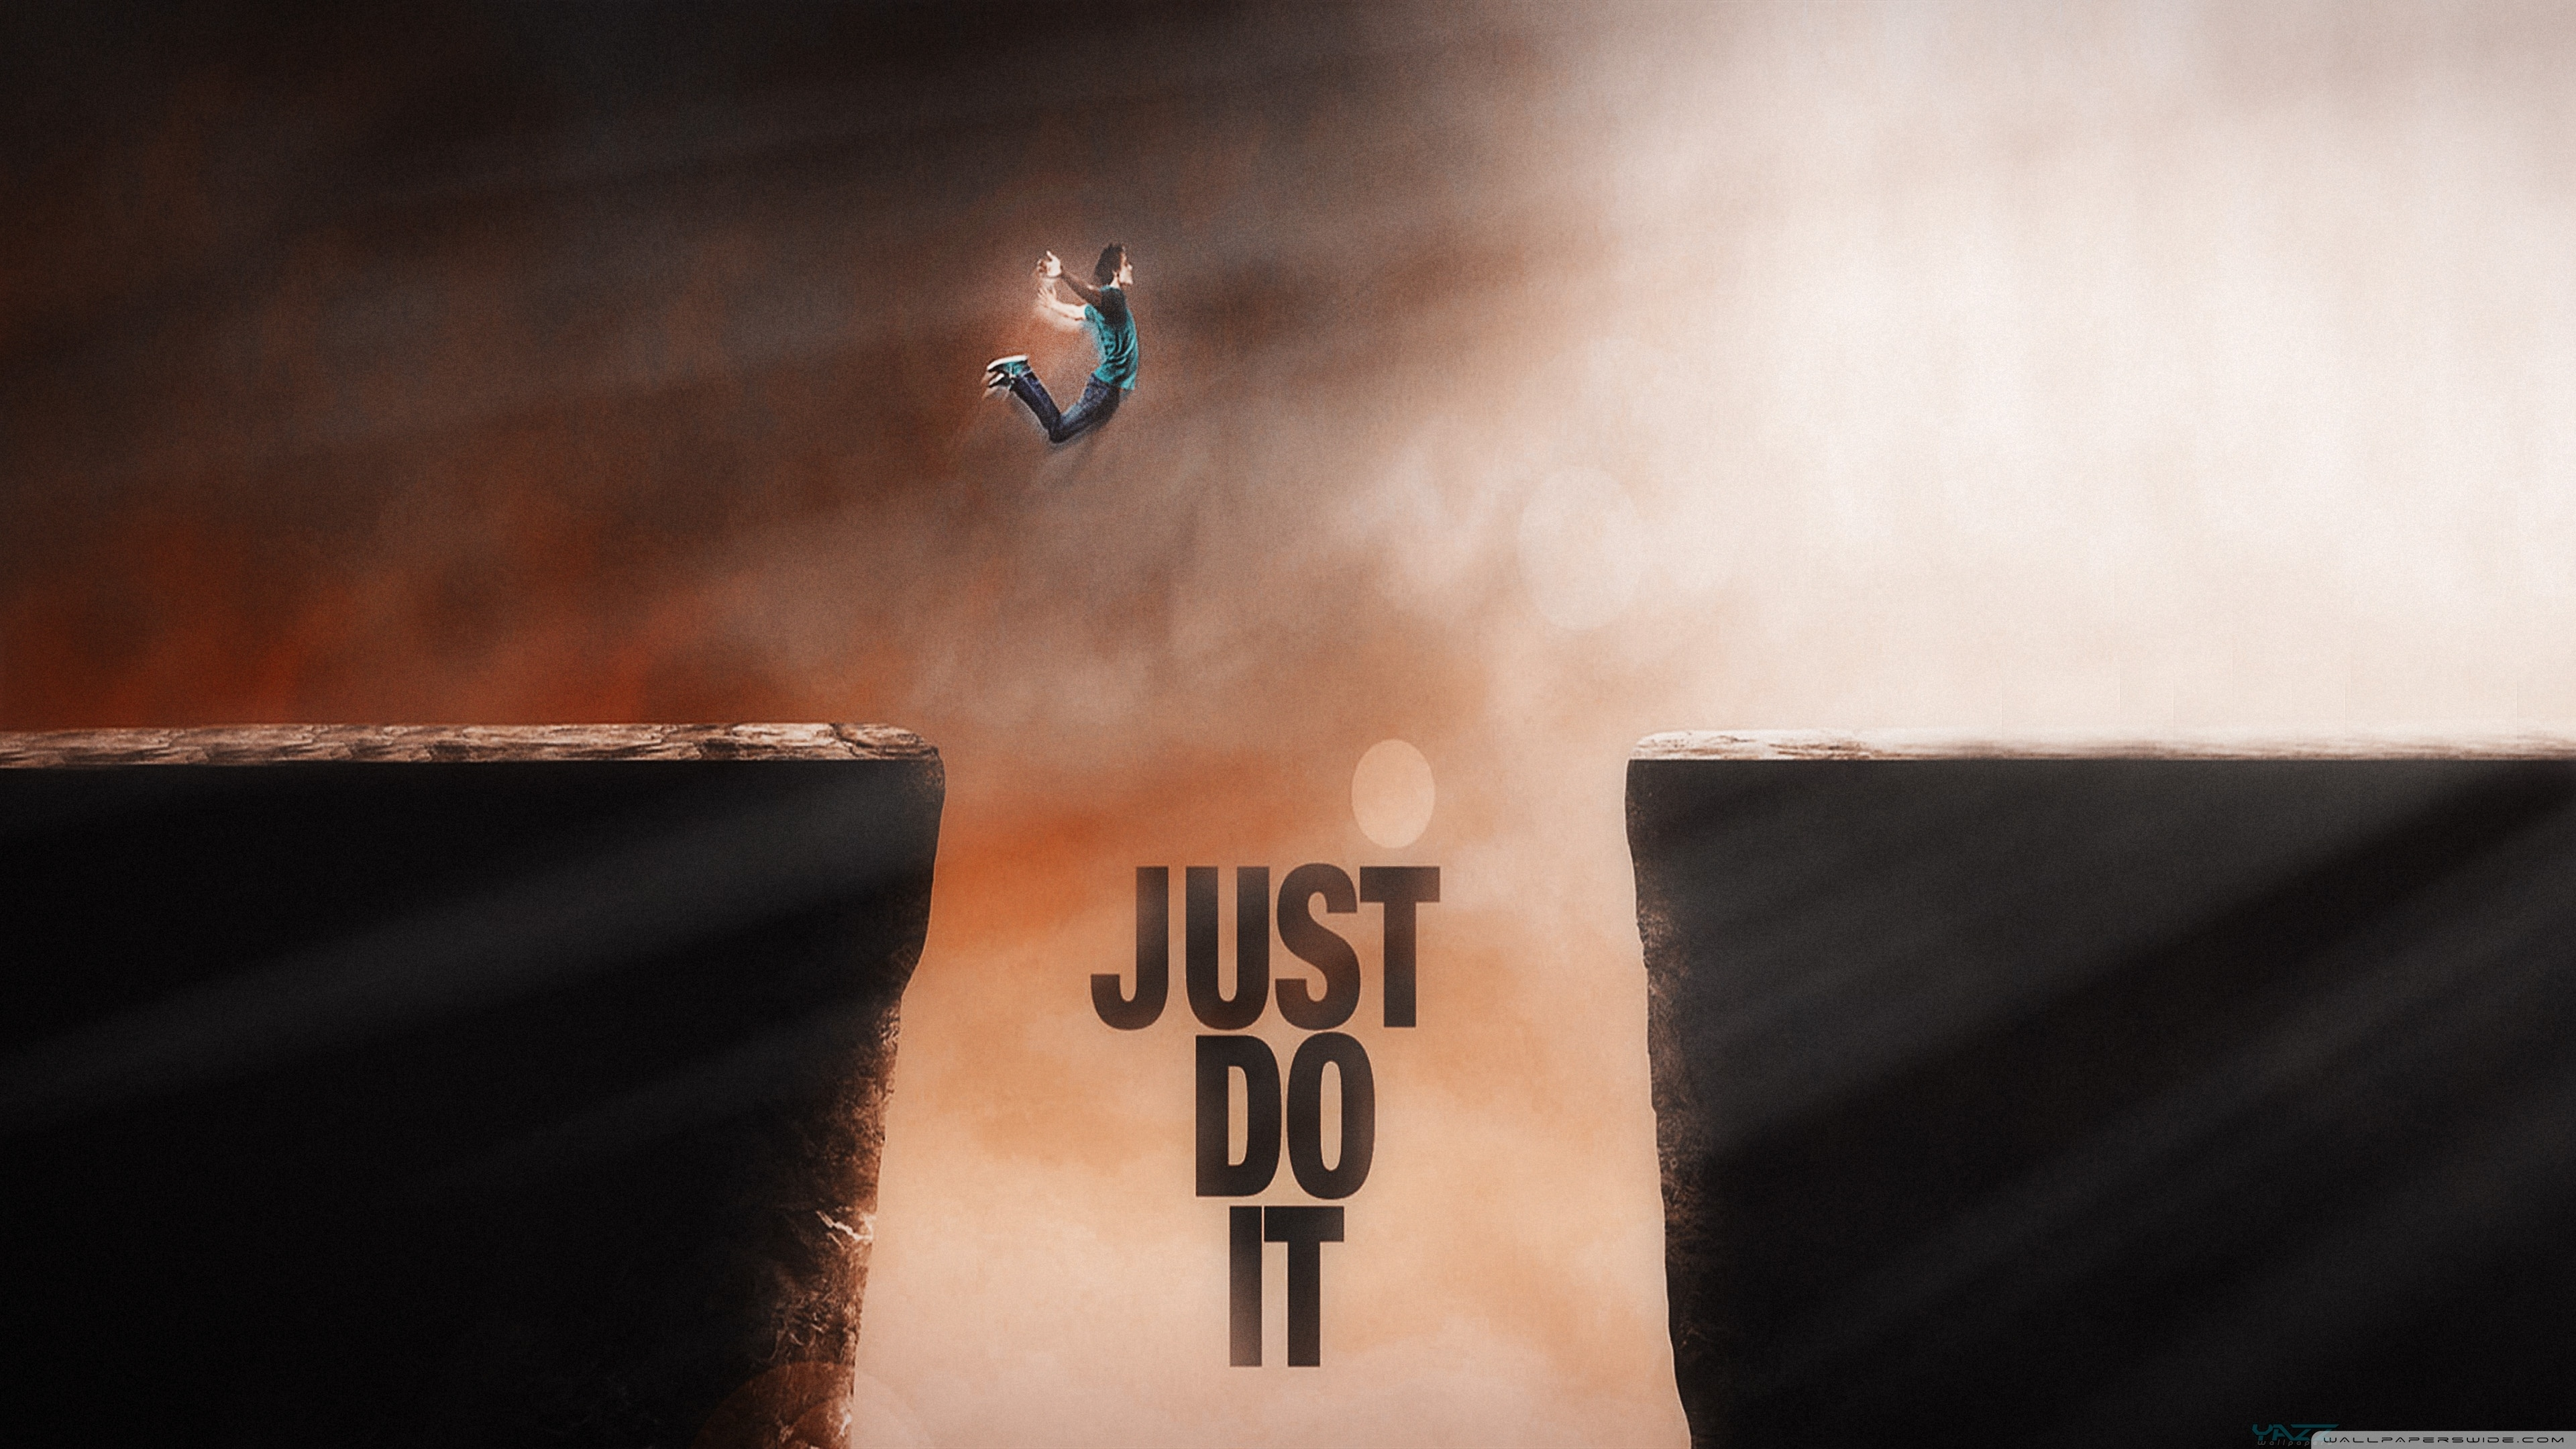 just do it ❤ 4k hd desktop wallpaper for 4k ultra hd tv • tablet